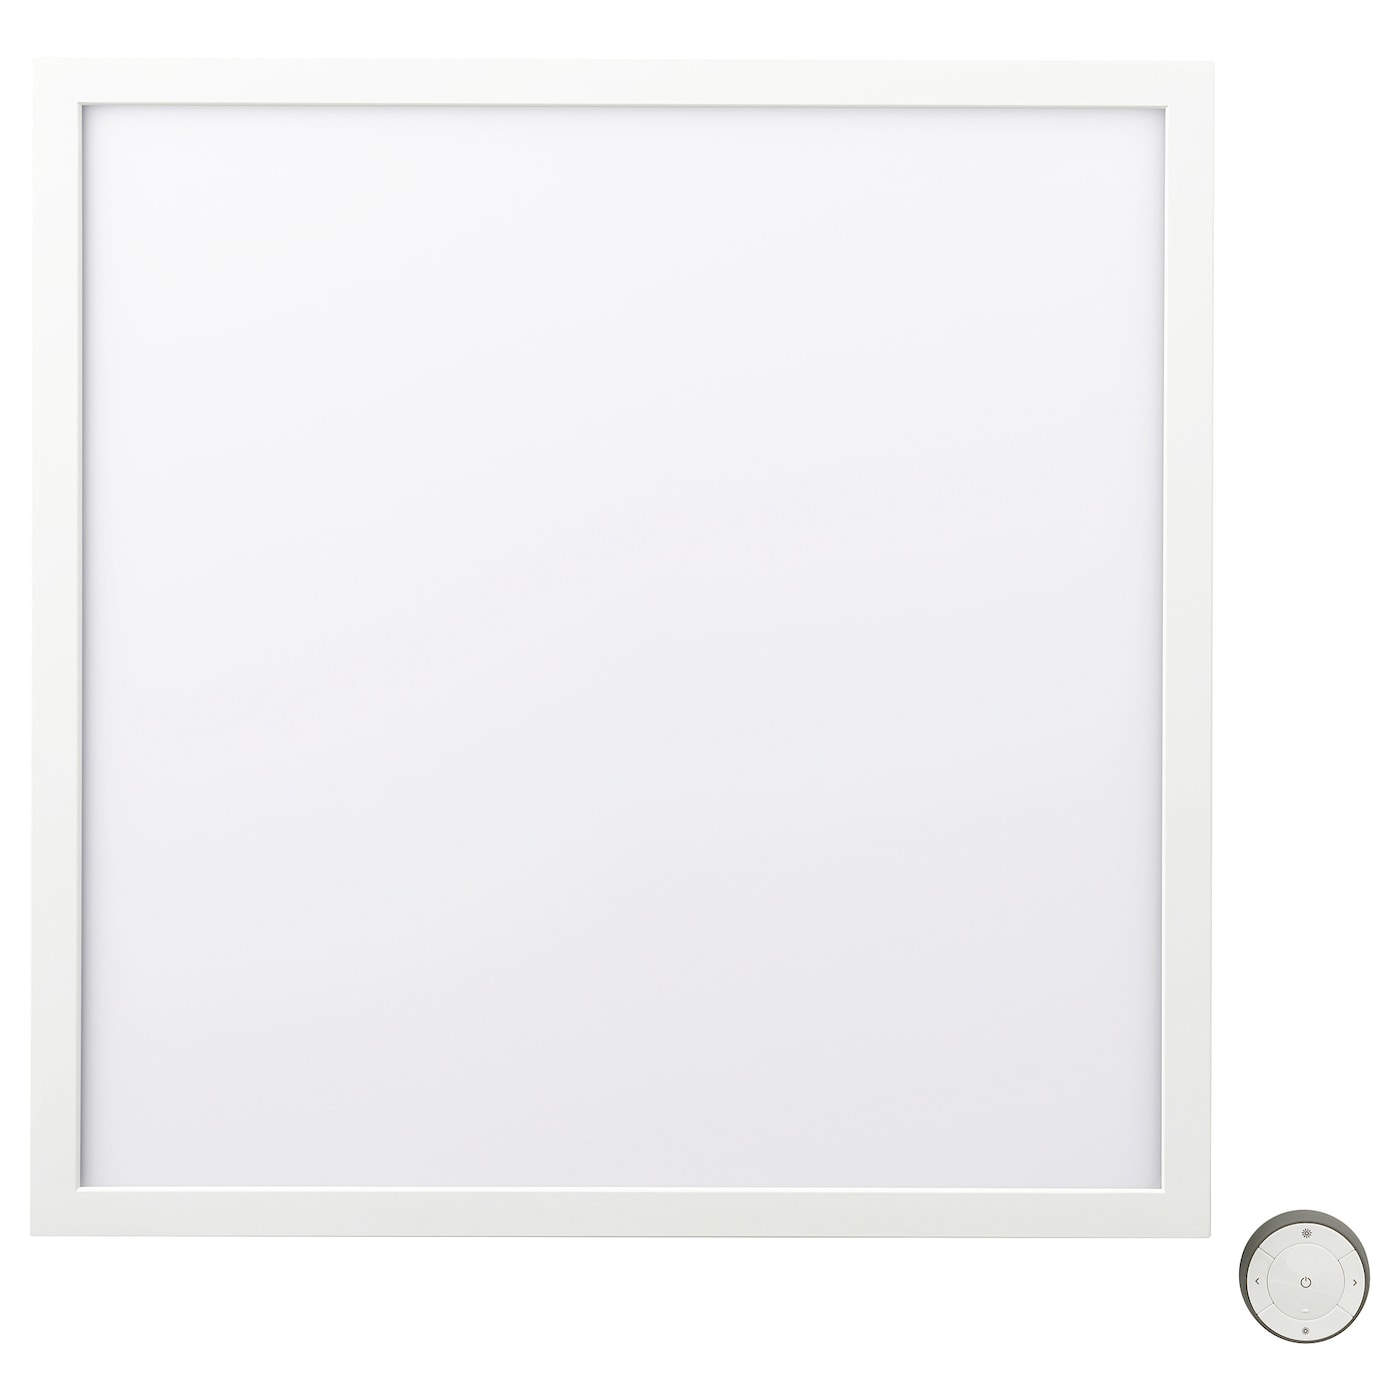 Floalt Led Light Panel W Wireless Control Dimmable White Spectrum 60 Wiring Lights To Leisure Battery Ikea